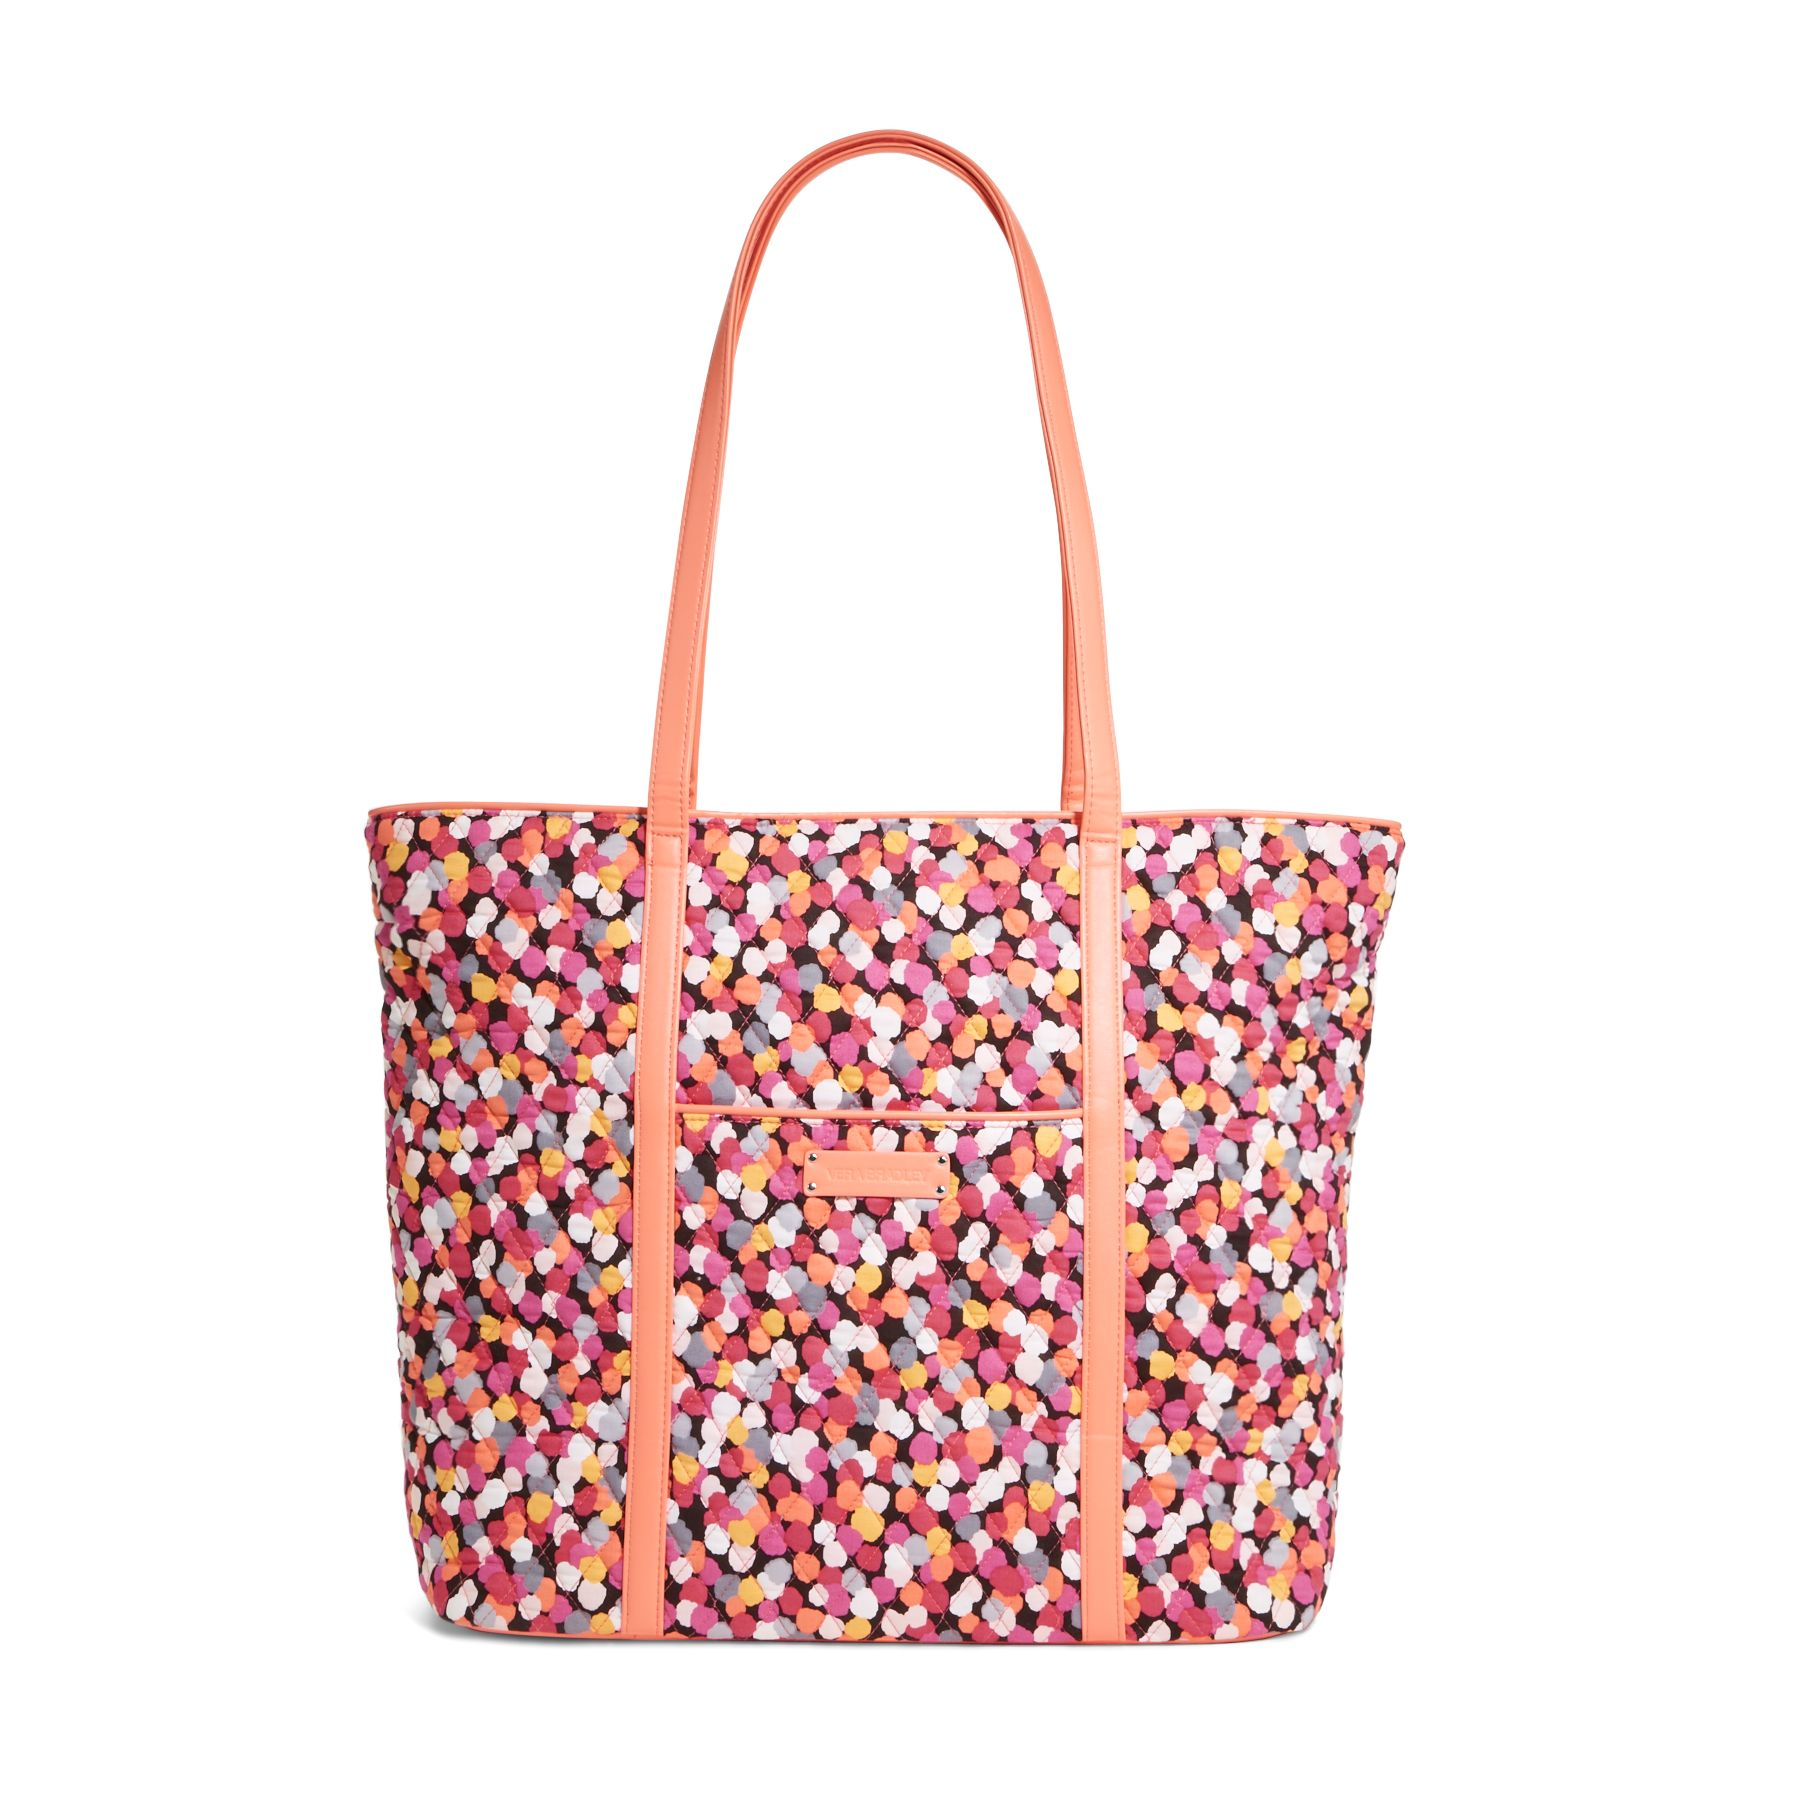 vera bradley Vera bradley at disney springs is located in the town center and is known for its colorful and quilted travel bags and accessories.